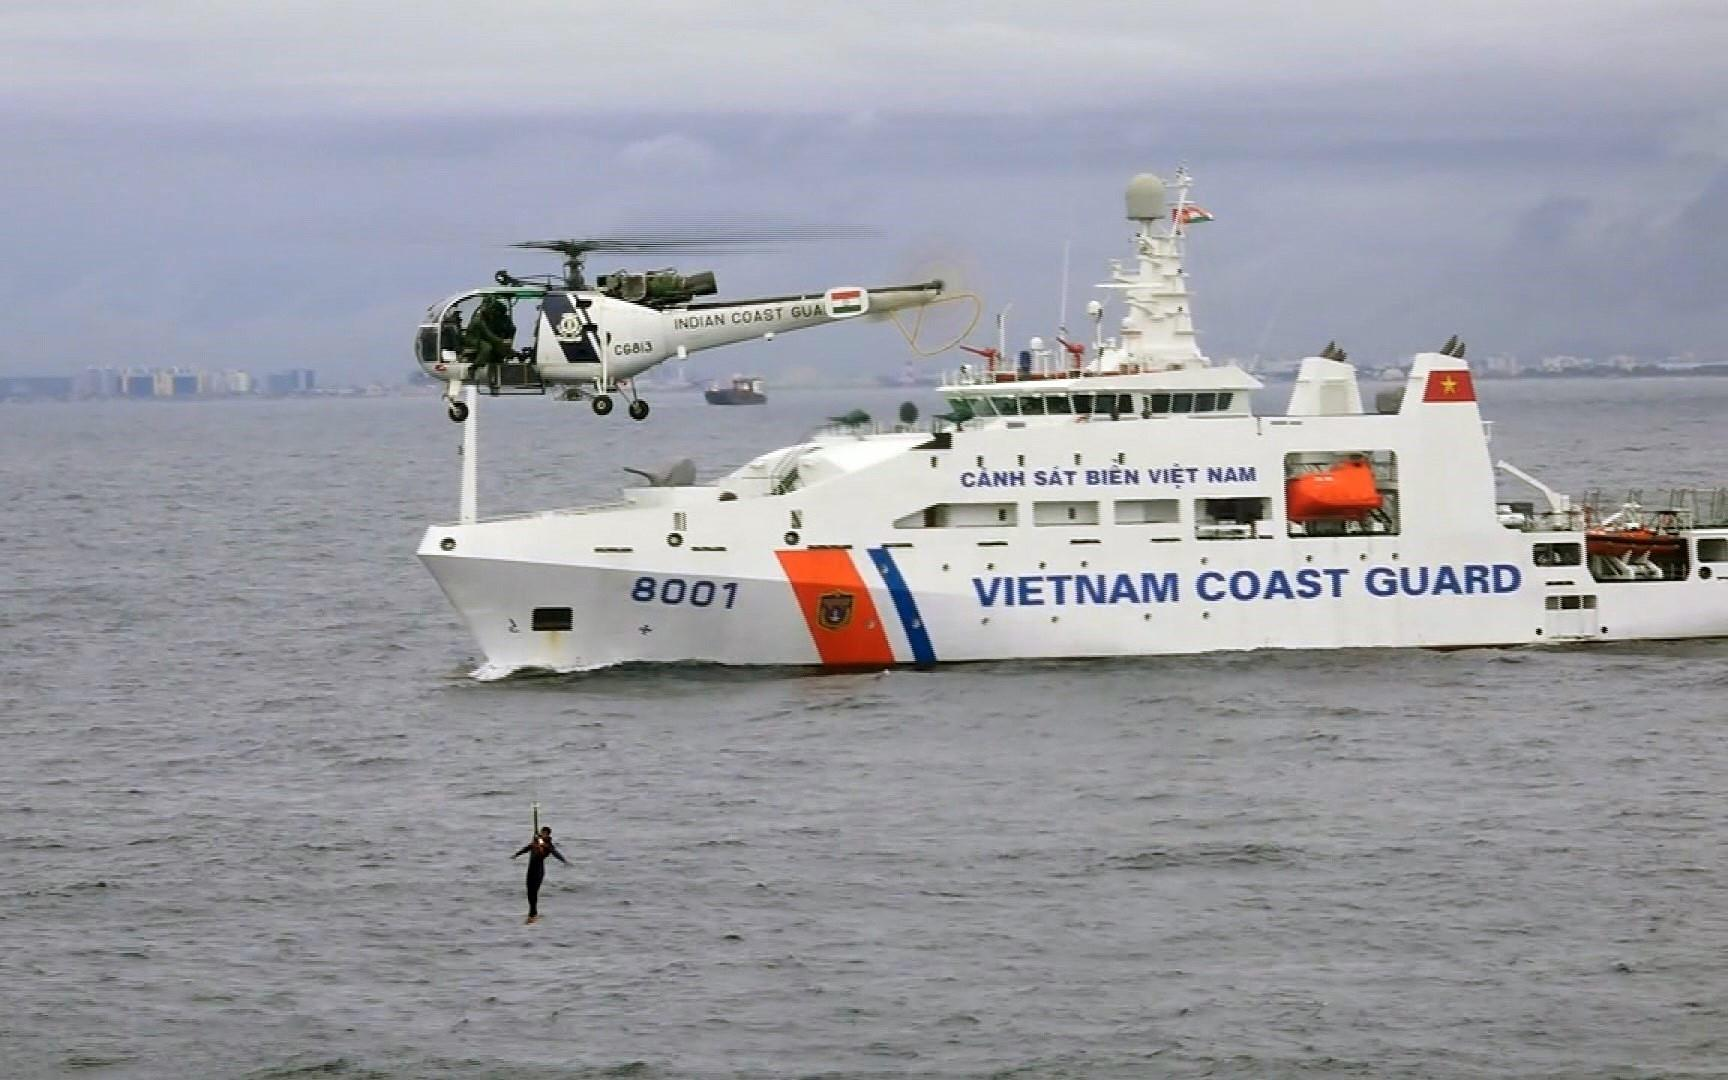 Vietnam's Coast Guard ship 8001 (under the Command of Coast Guard Region 3) takes part in a joint drill on hostage rescue with Indian Coast Guard in Bengal Bay off the coast of Chennai, Tamil Nadu state of India, October 4, 2018 (Photo: VNA)